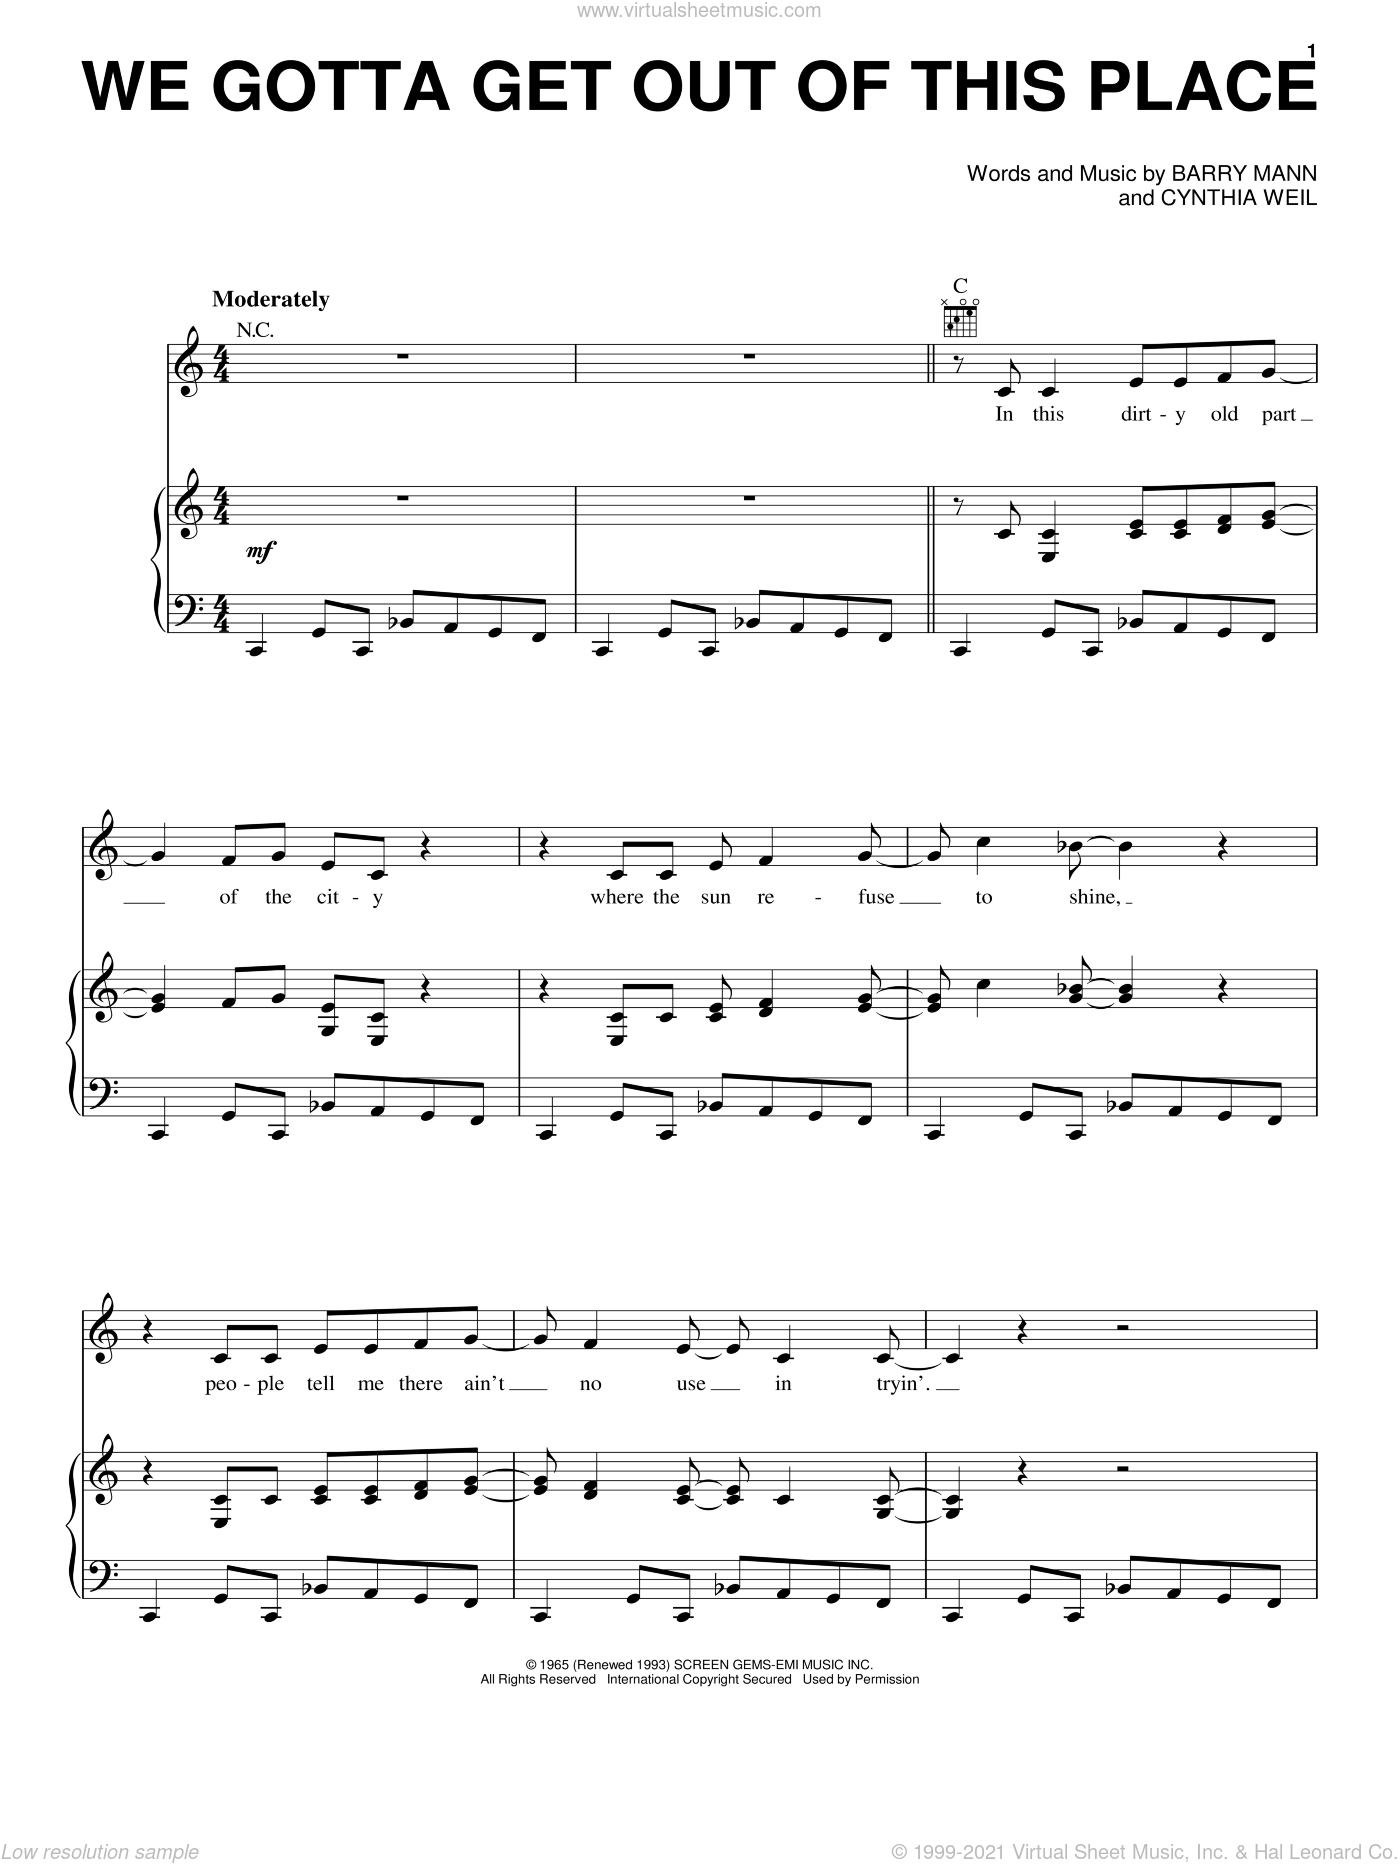 We Gotta Get Out Of This Place sheet music for voice, piano or guitar by Carole King, The Animals, Barry Mann and Cynthia Weil, intermediate skill level